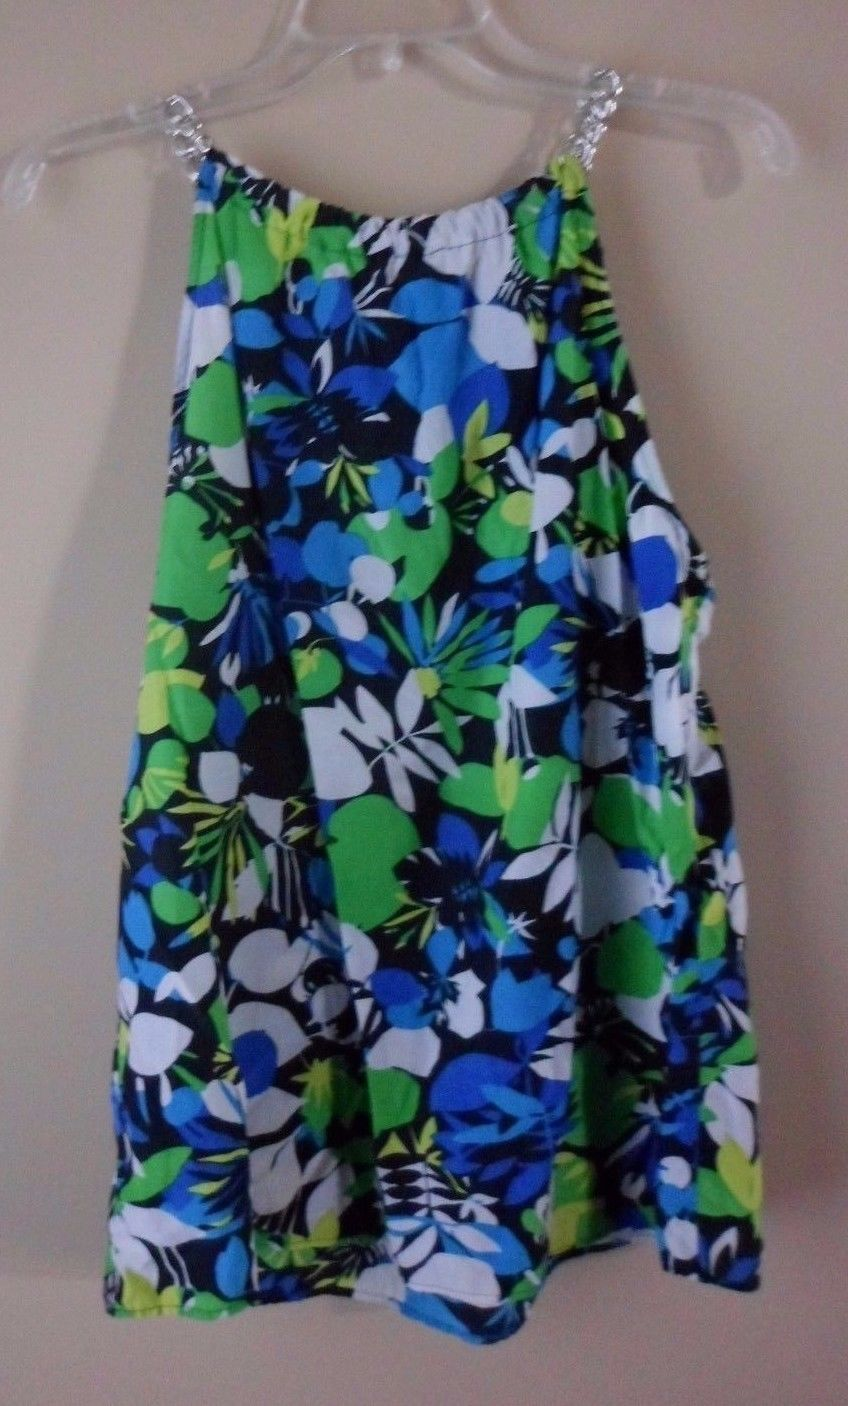 Primary image for Kenneth Cole New York Sleeveless Tunic Top Size 12 Green Blue White  yellow